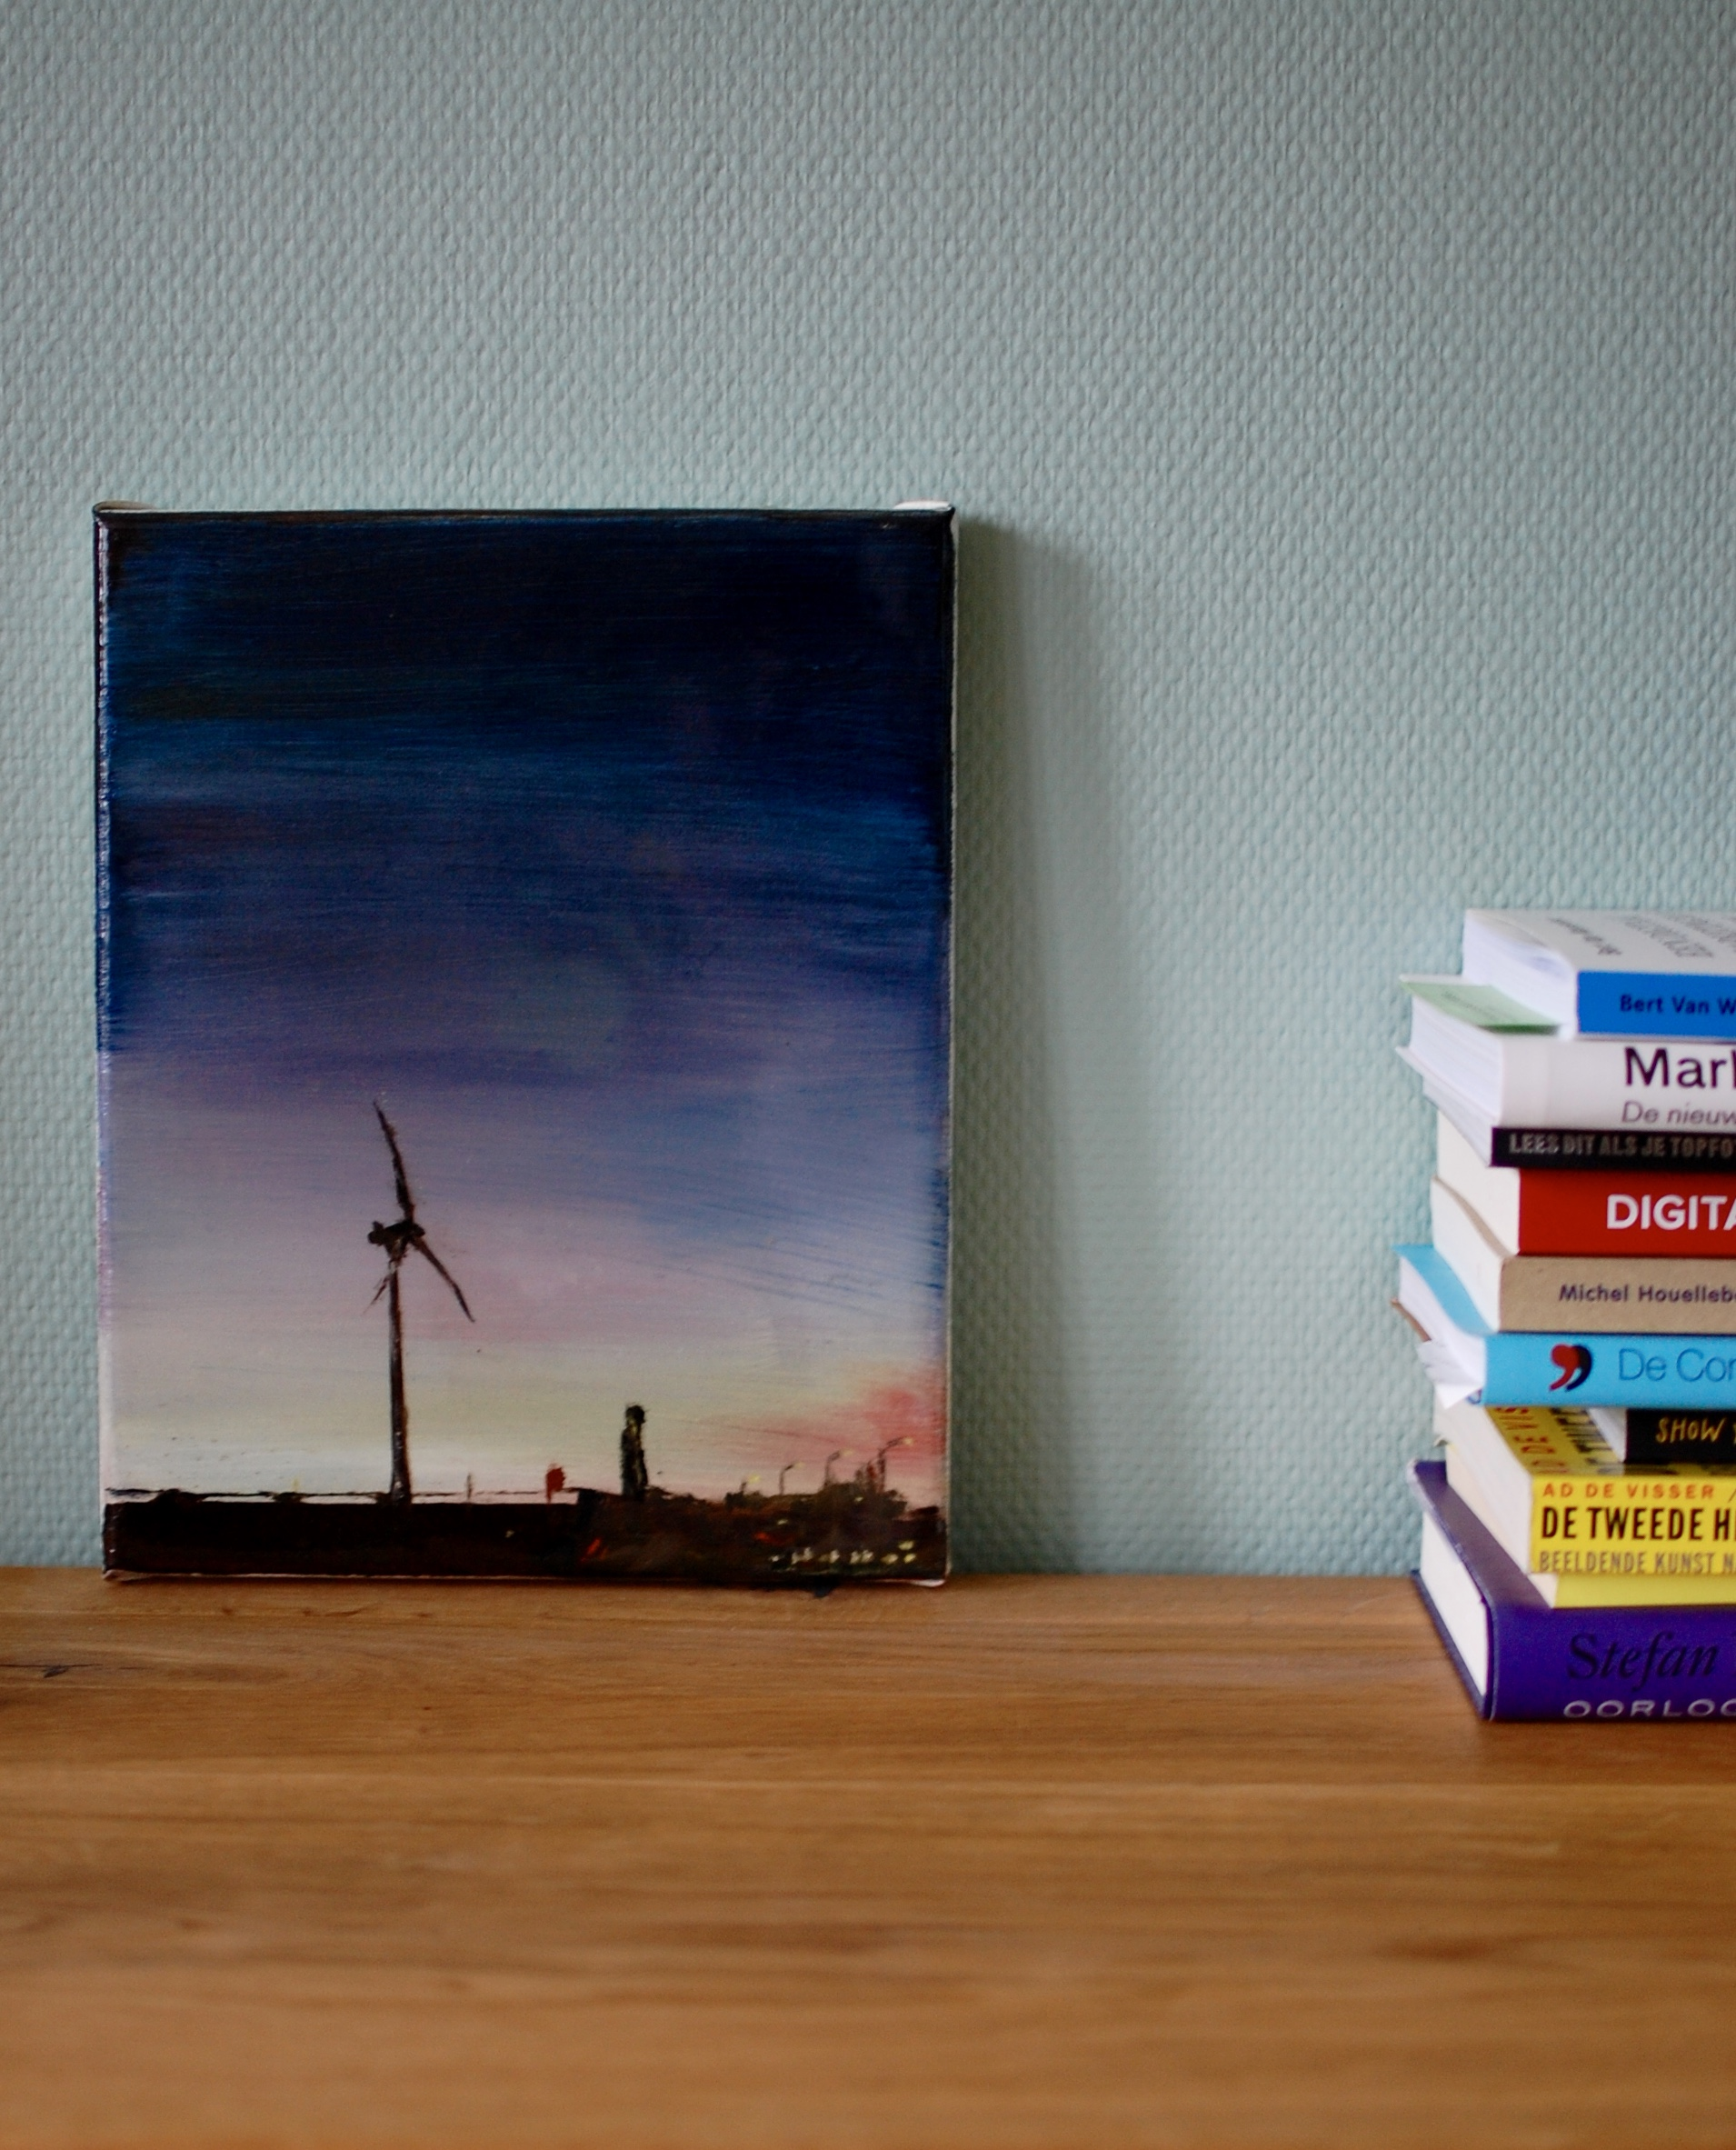 Painting Windmill on a book shelf